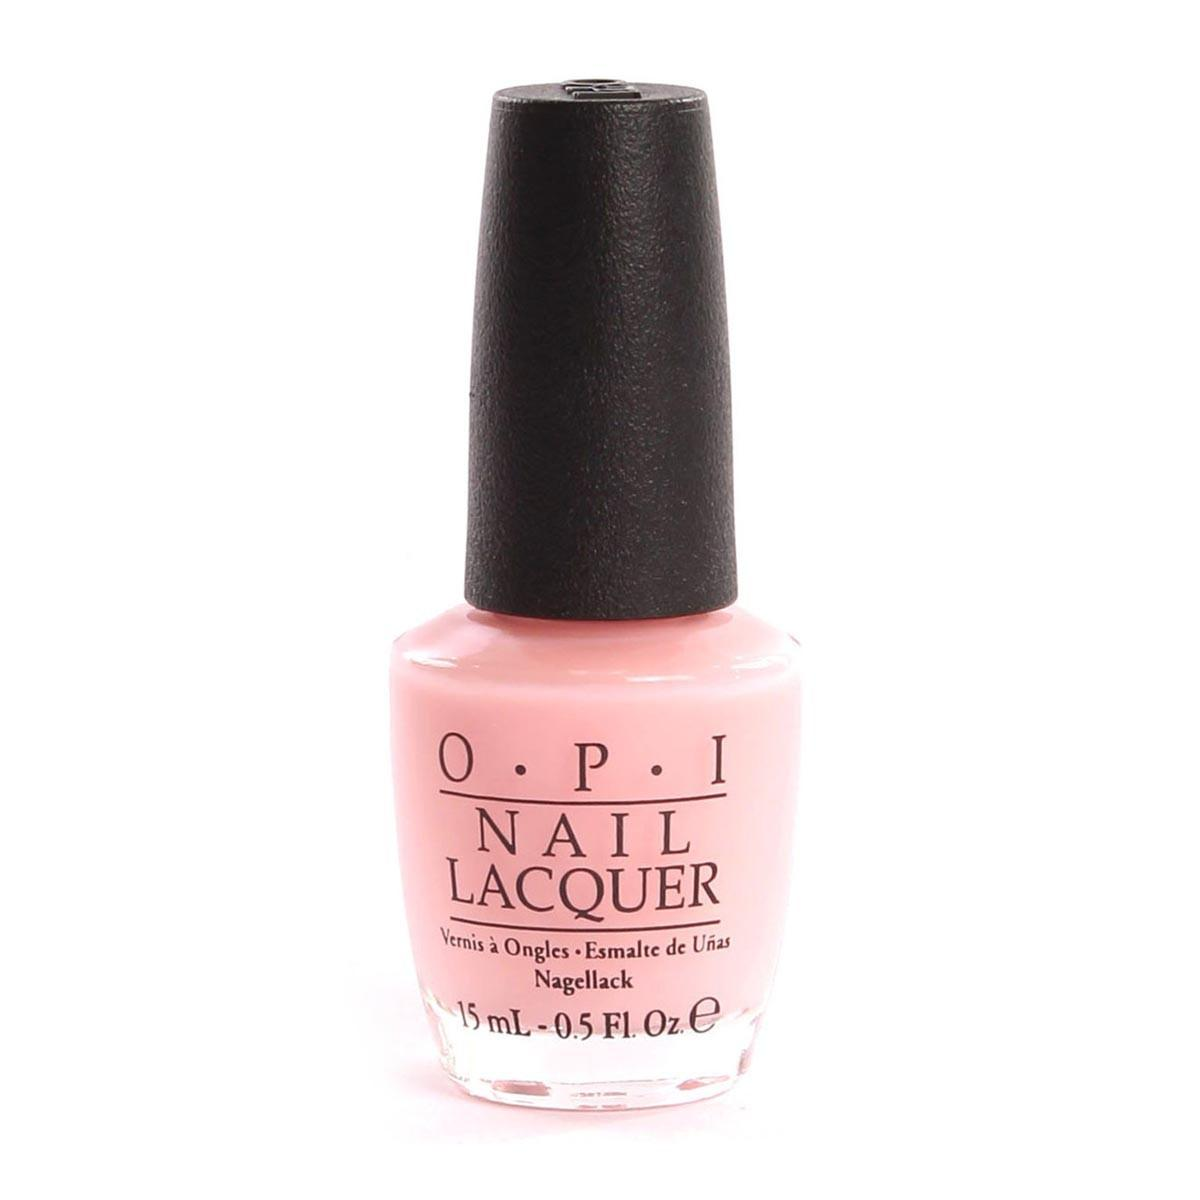 Opi fragrances Nail Lacquer Nlf27 In The Spotlight Pink